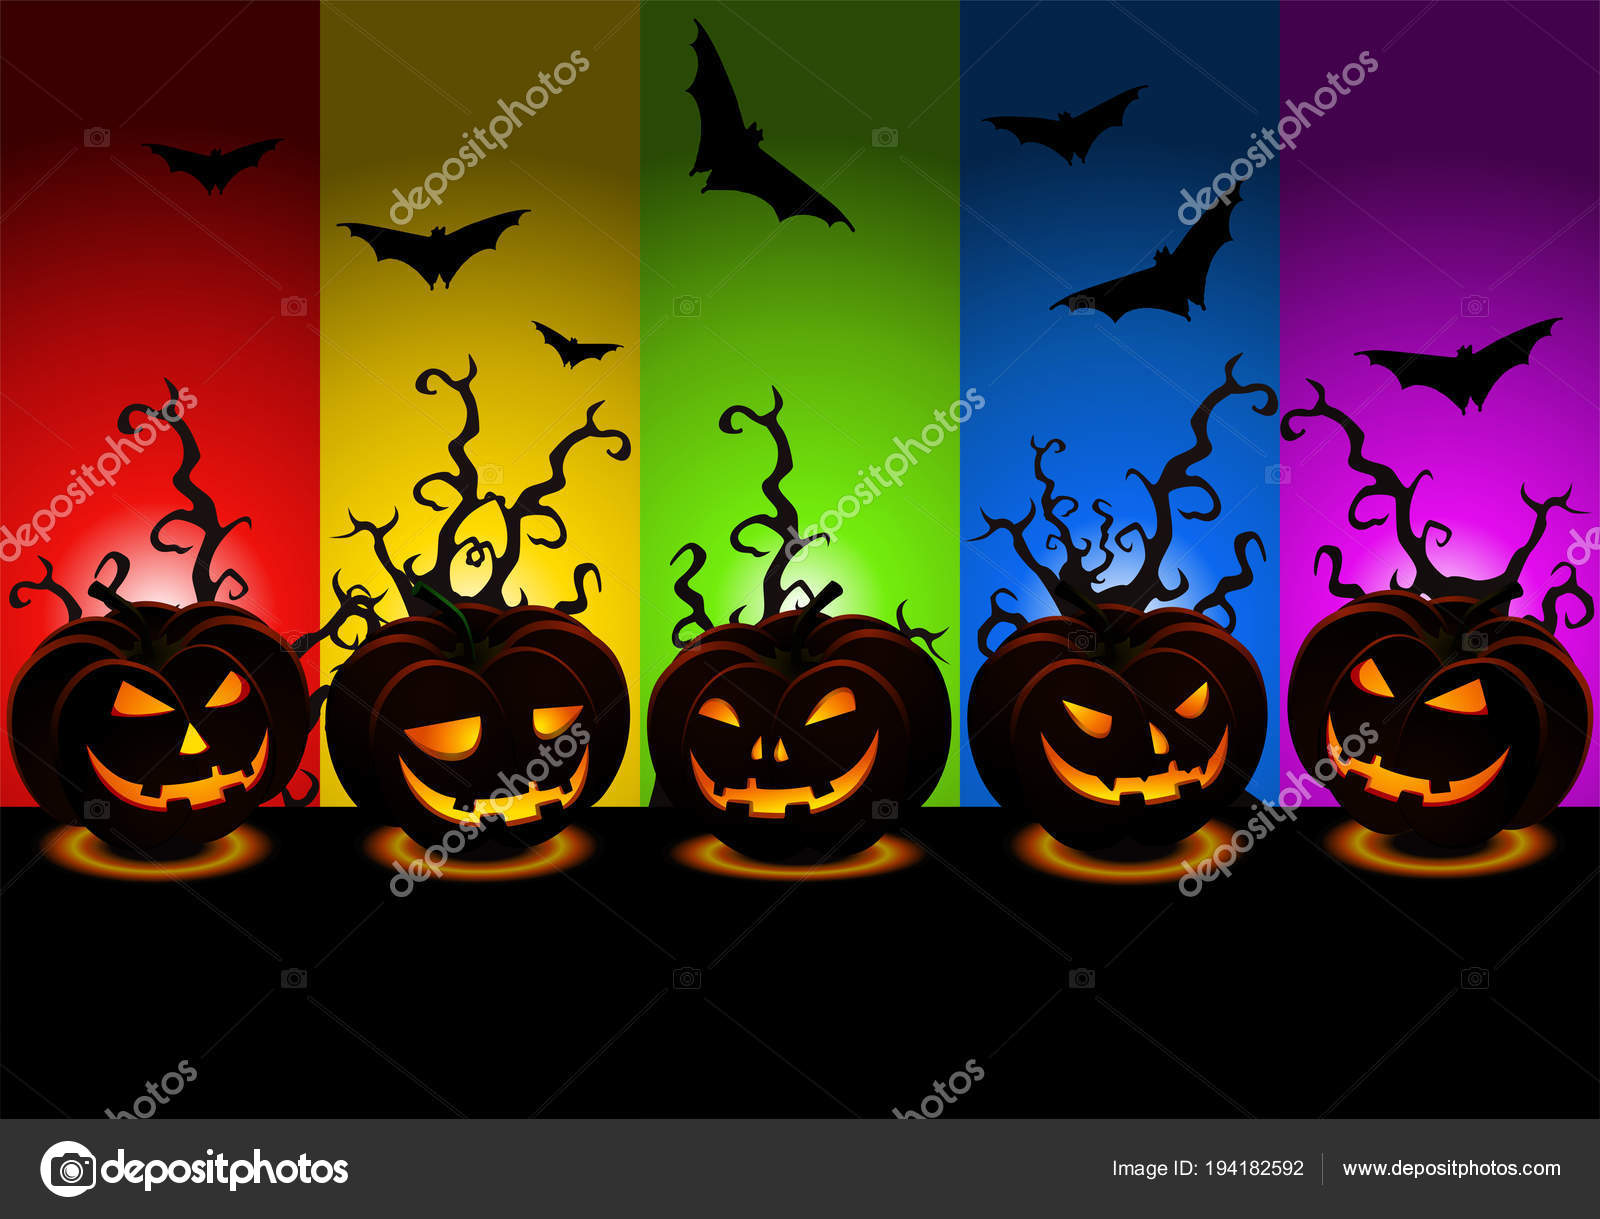 Wallpapers halloween scary wallpaper